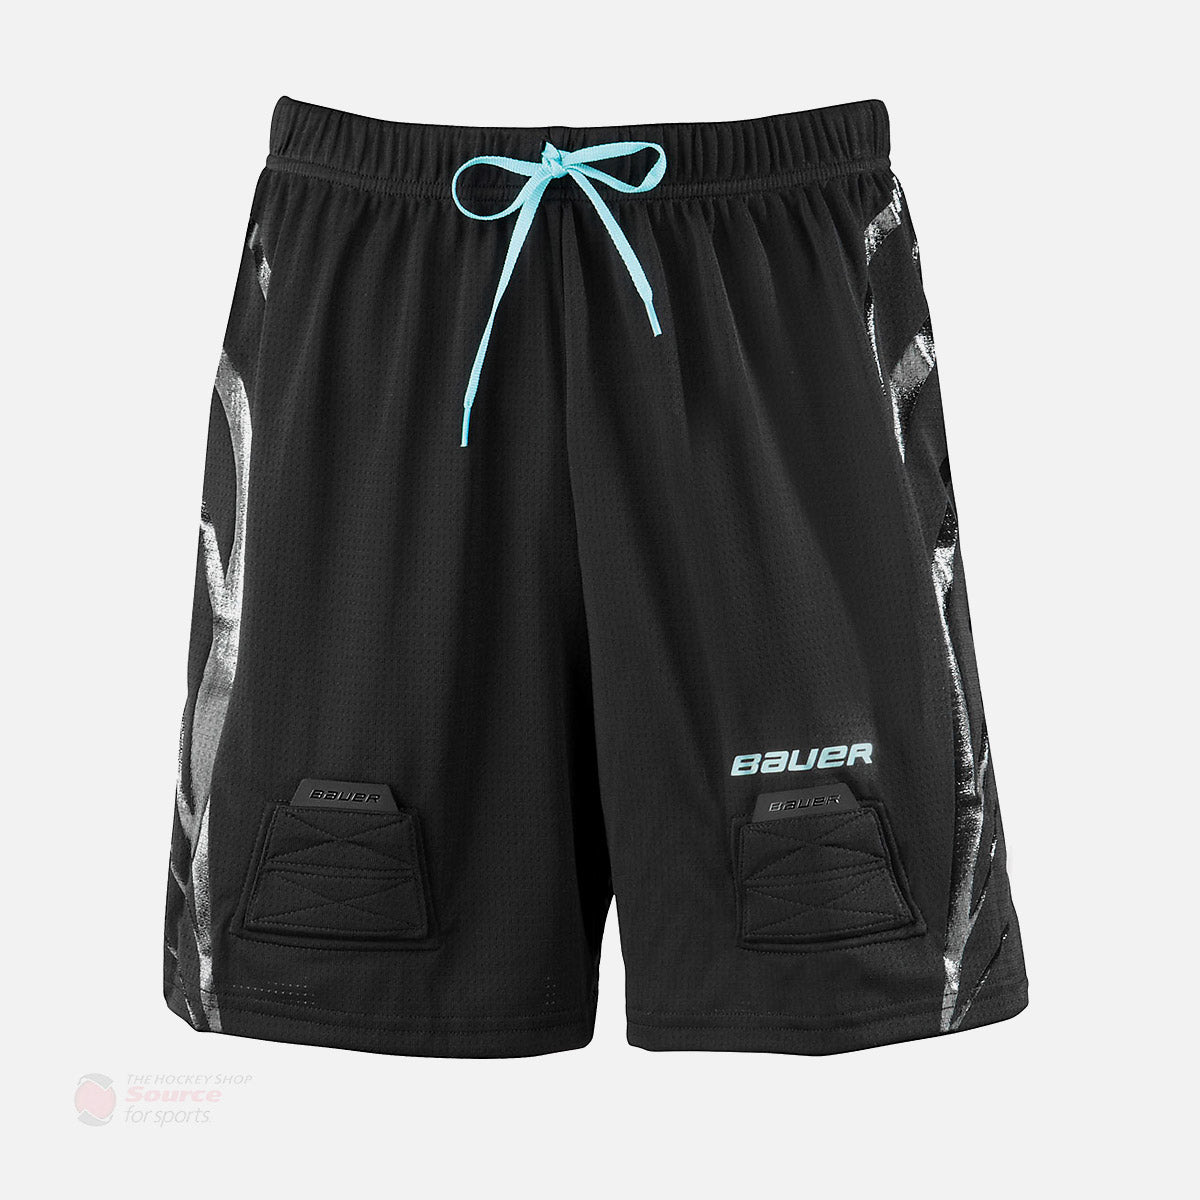 Bauer NG Mesh Girls Jill Shorts